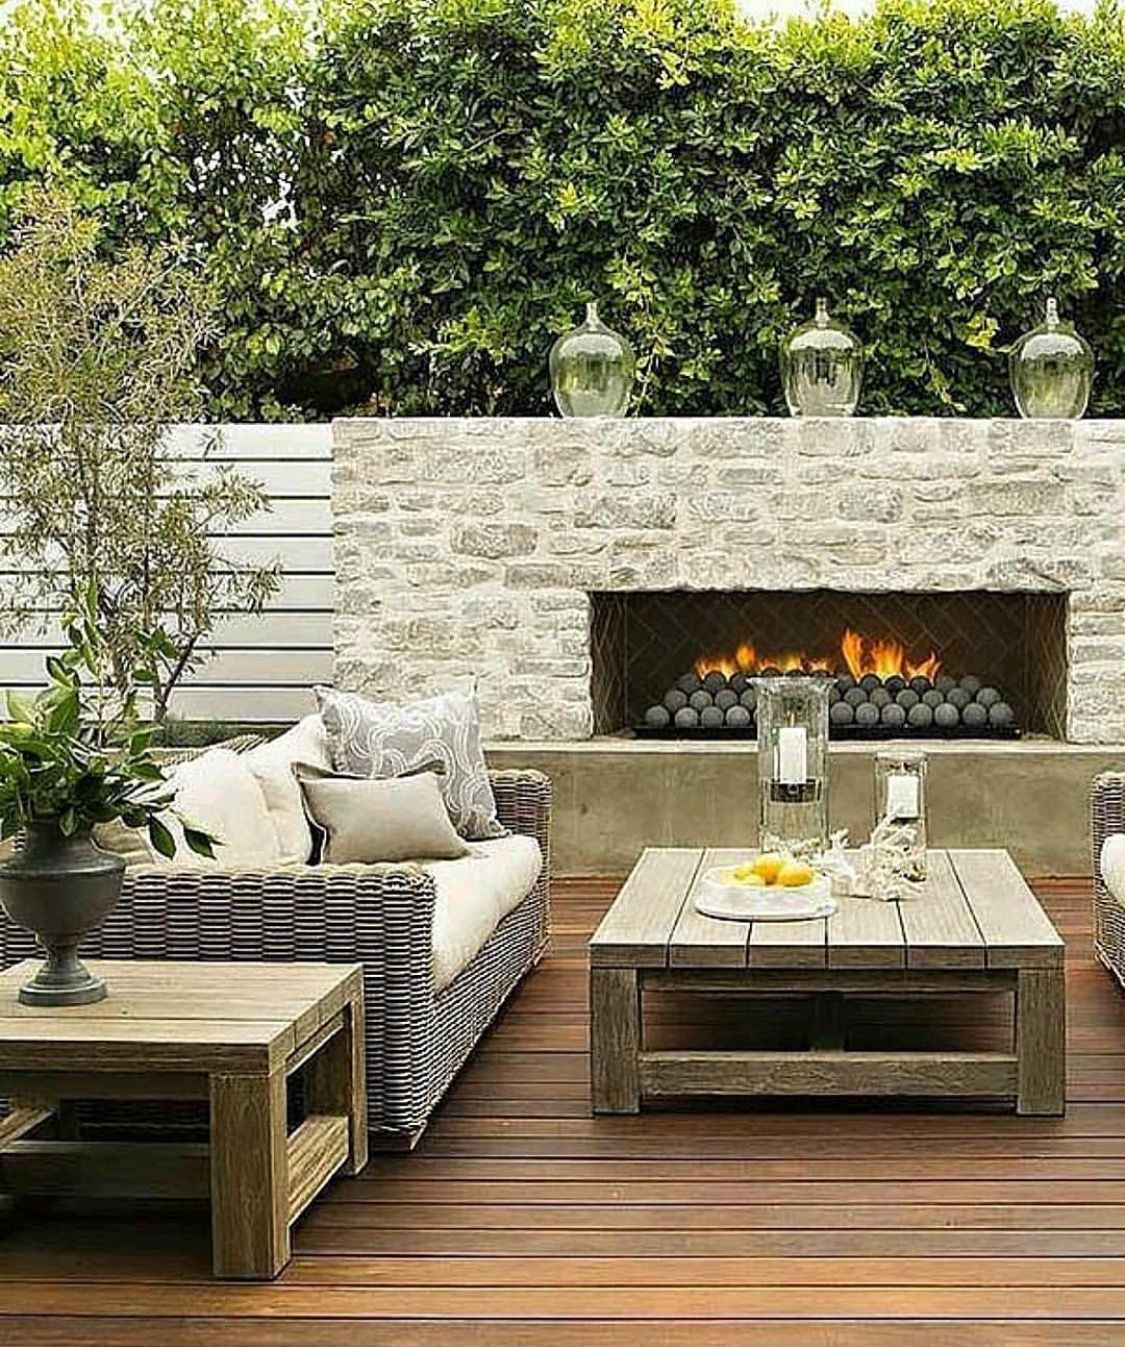 Outdoor Living Northside Pin By Northside Realty Inc On Outdoor Spaces In 2018 Outdoor